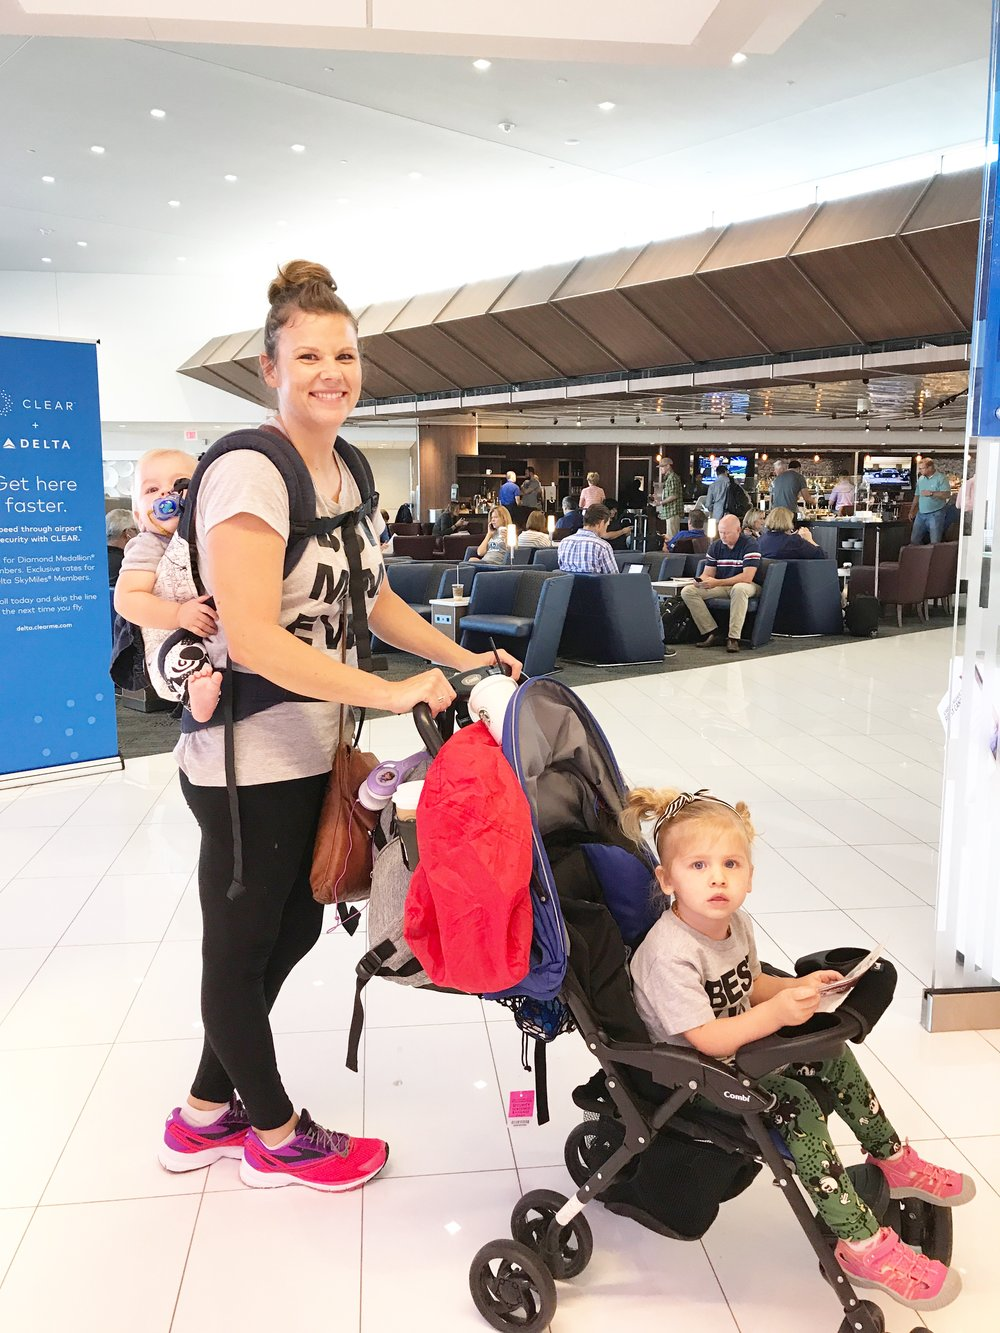 While this isn't me actively lulling a baby to sleep ON a plane, it is me getting 2 kids through the airport by myself. I highly recommend investing in a baby carrier